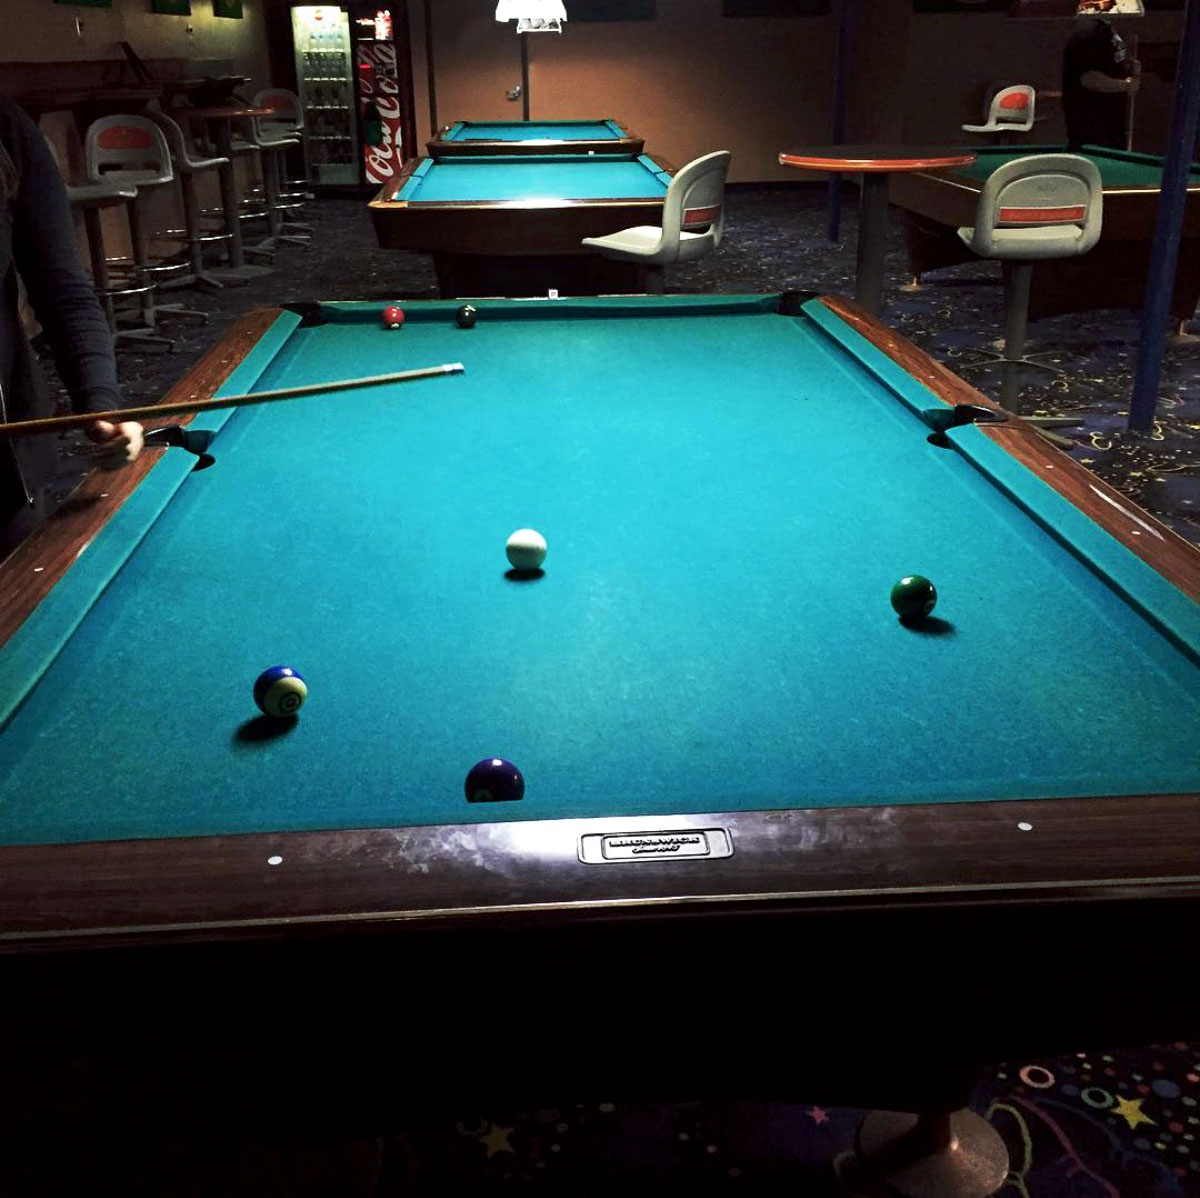 Pool table at Banks Billiards